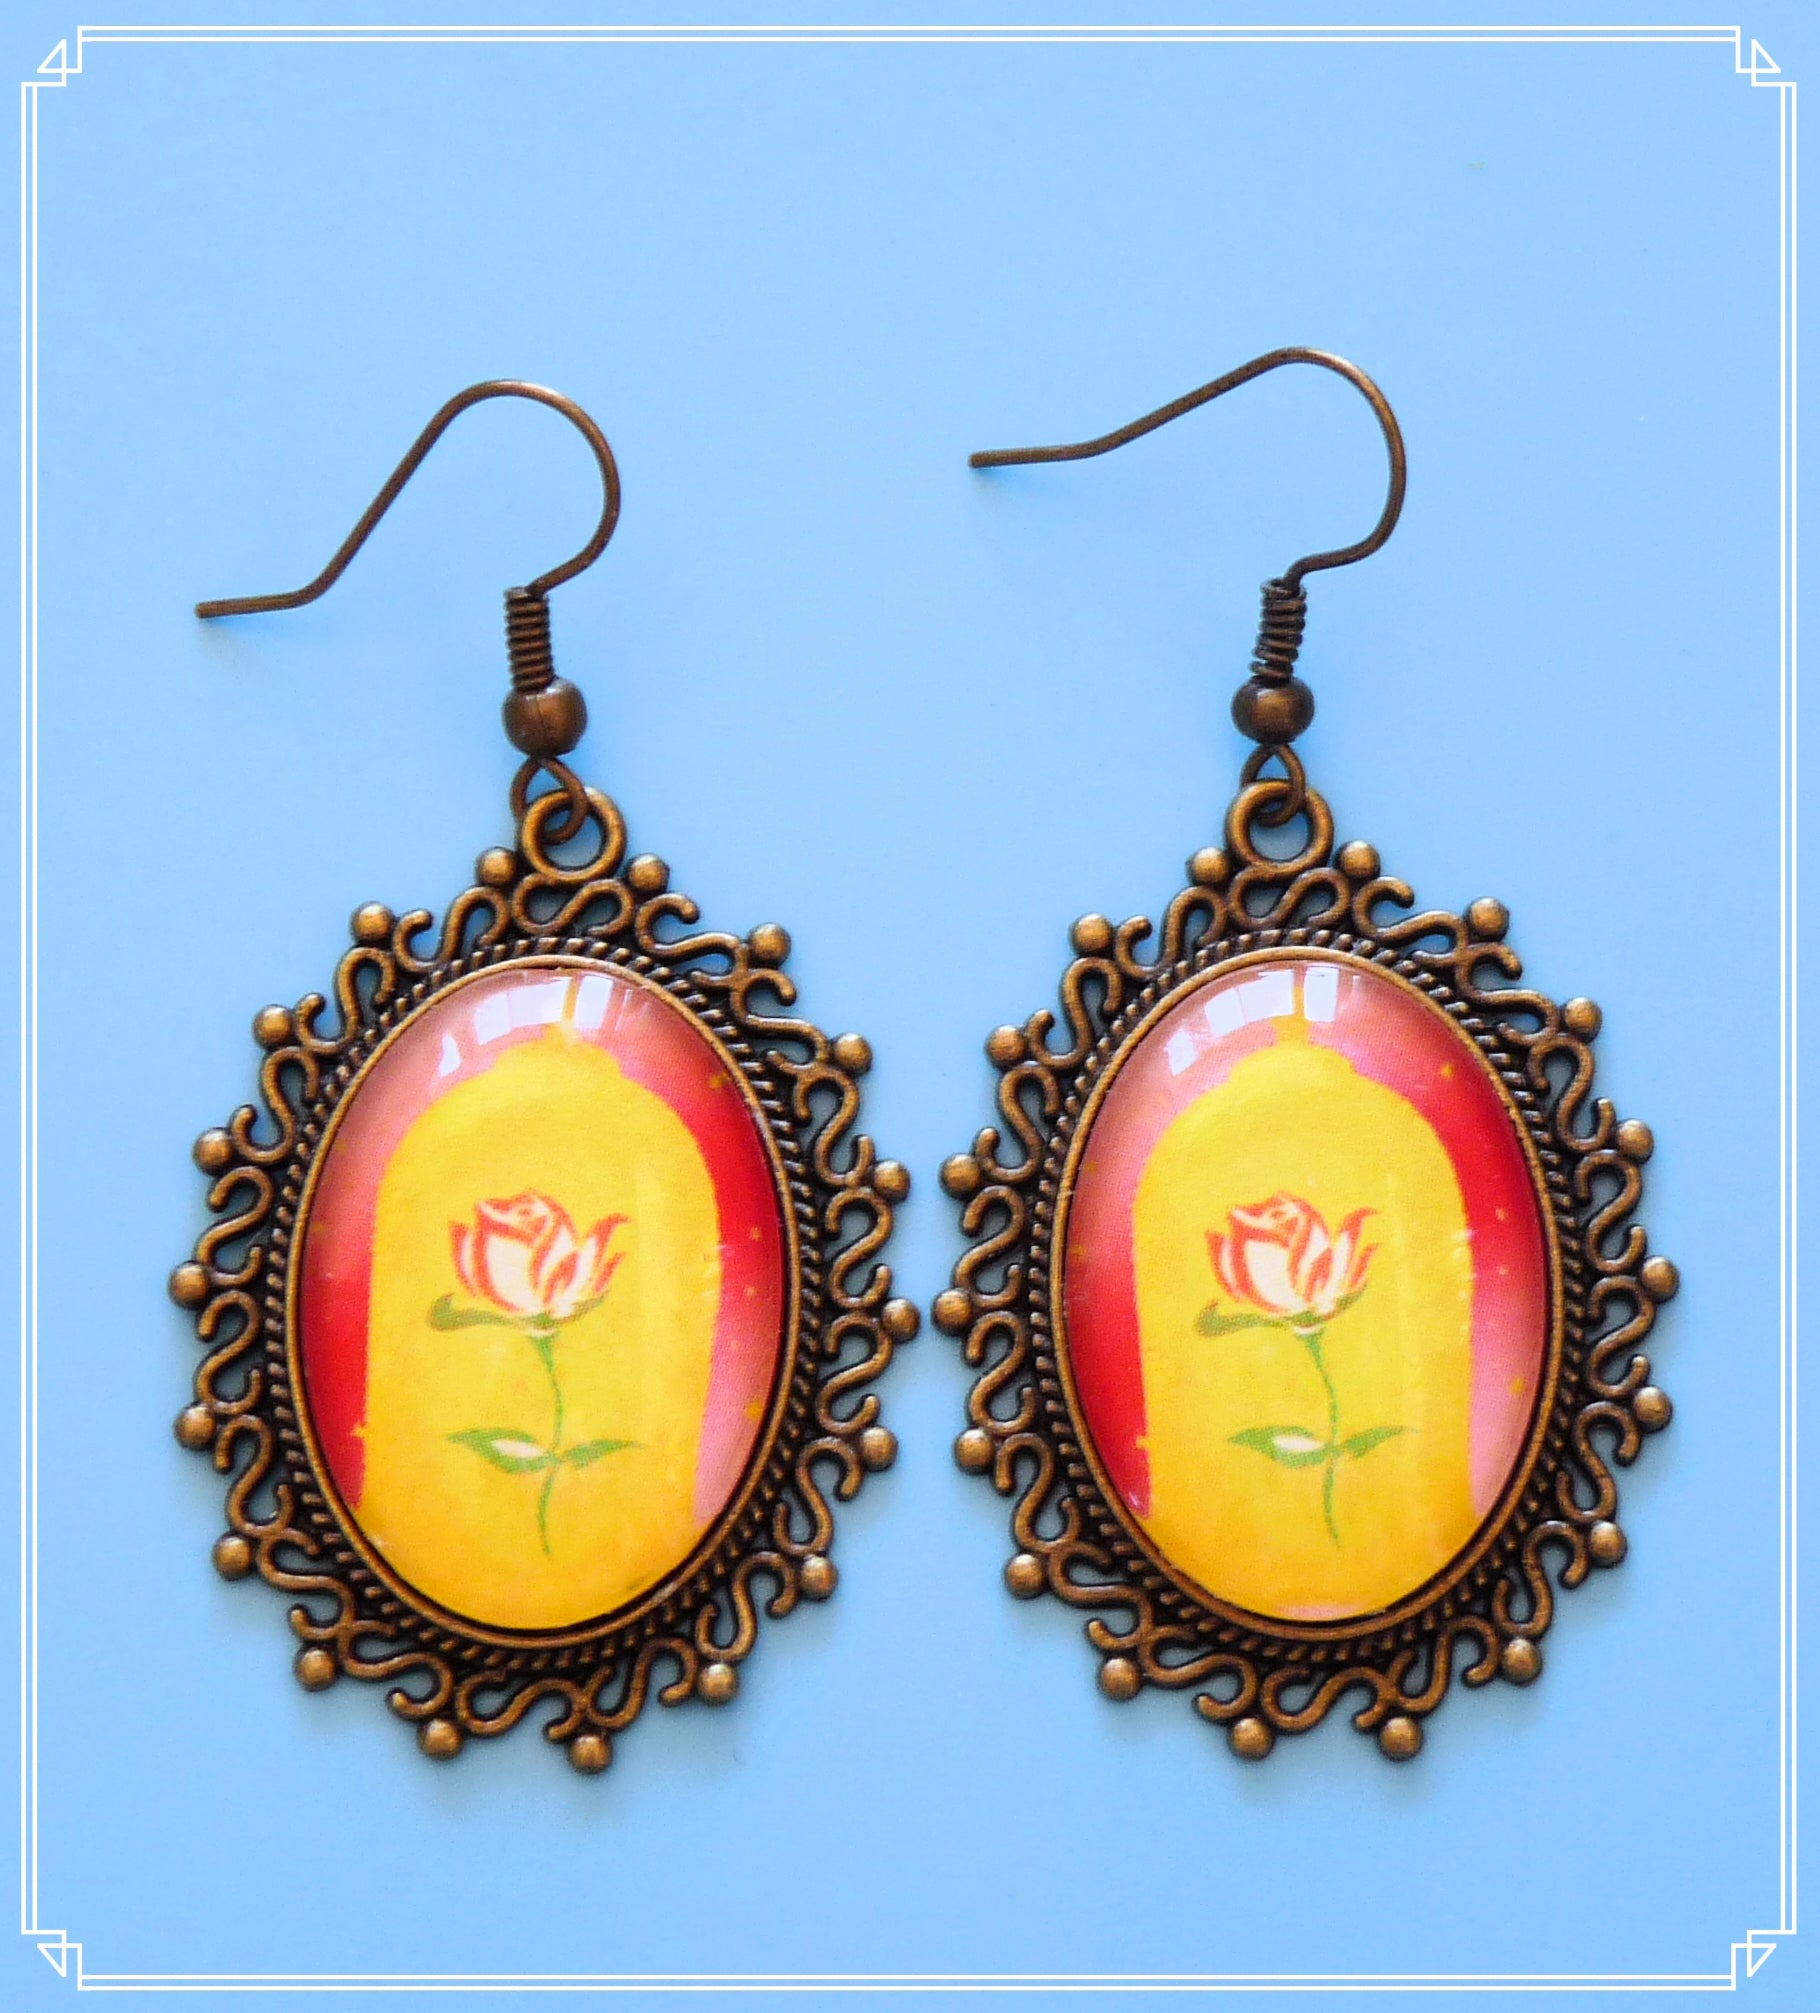 Belle Enchanted Rose statement drop earrings are part of my Pop Culture collection.